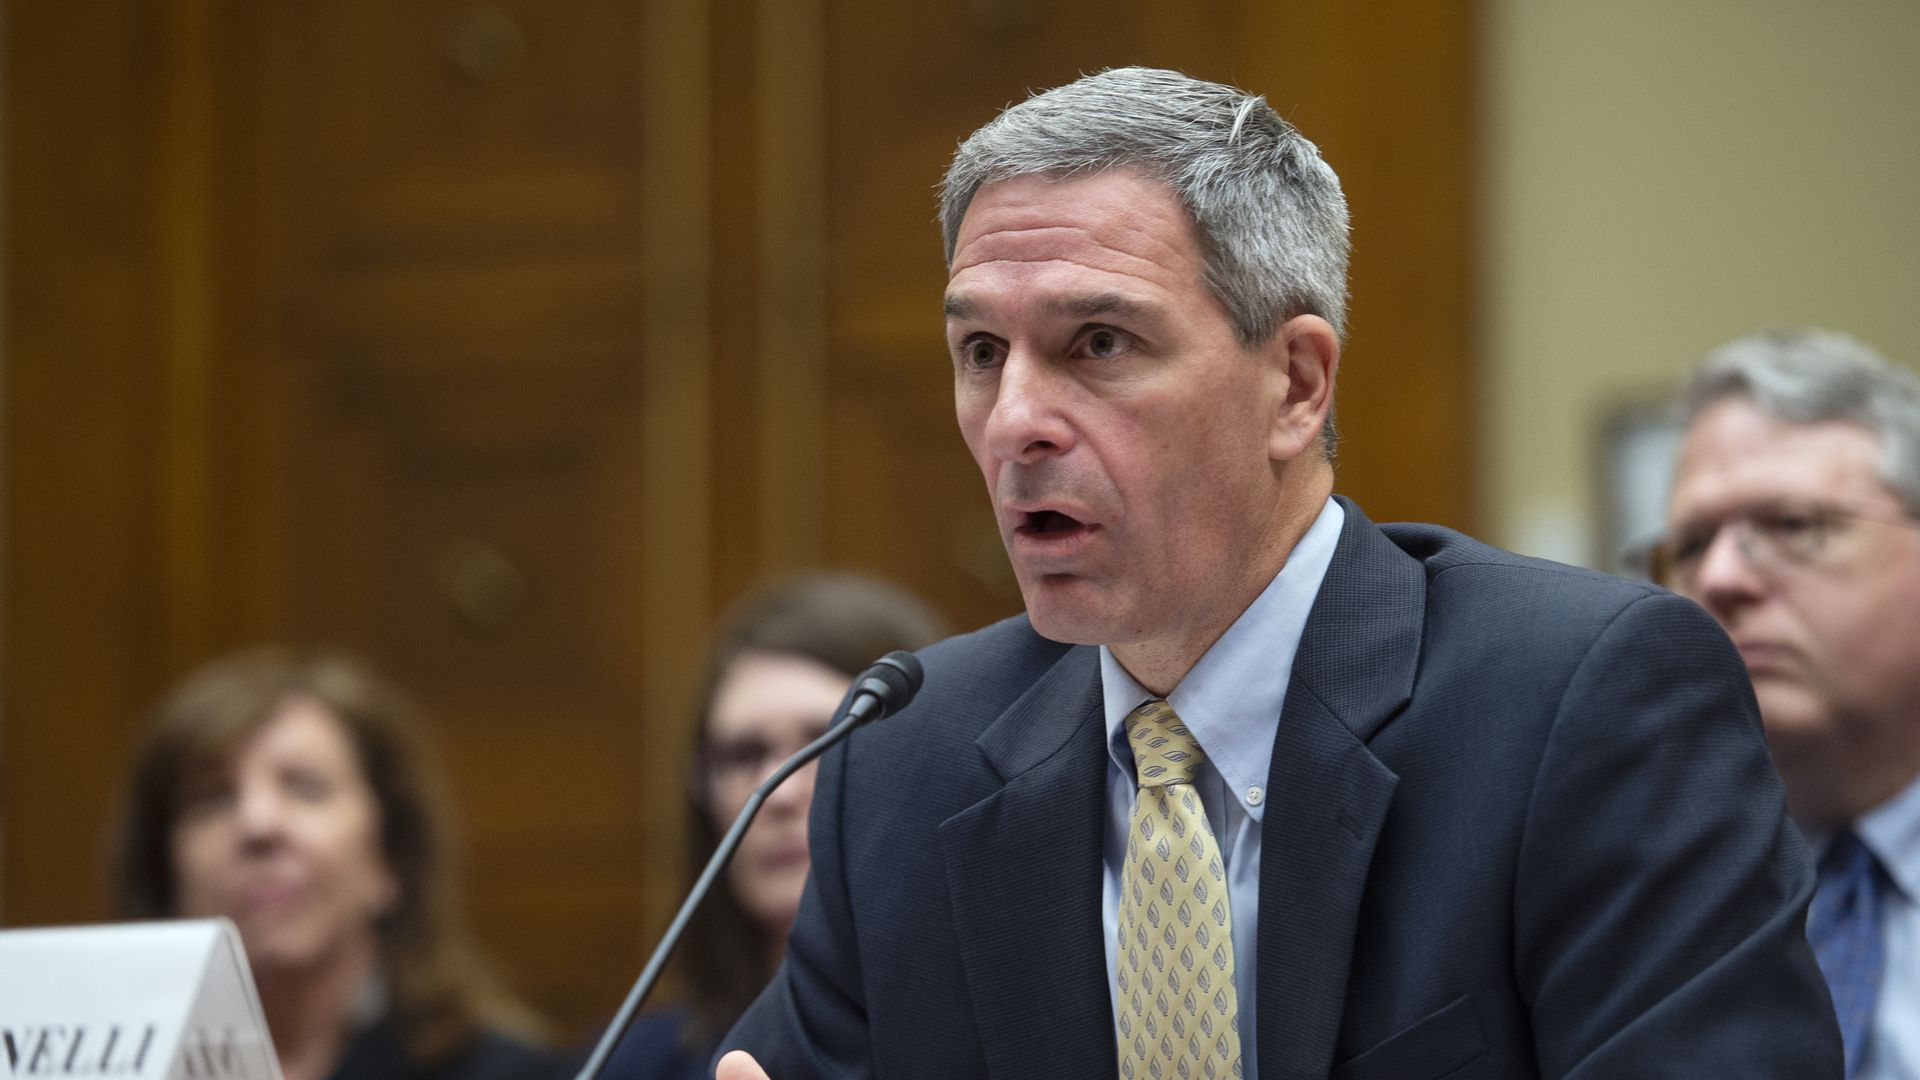 Ken Cuccinelli testifies before Congress last month.